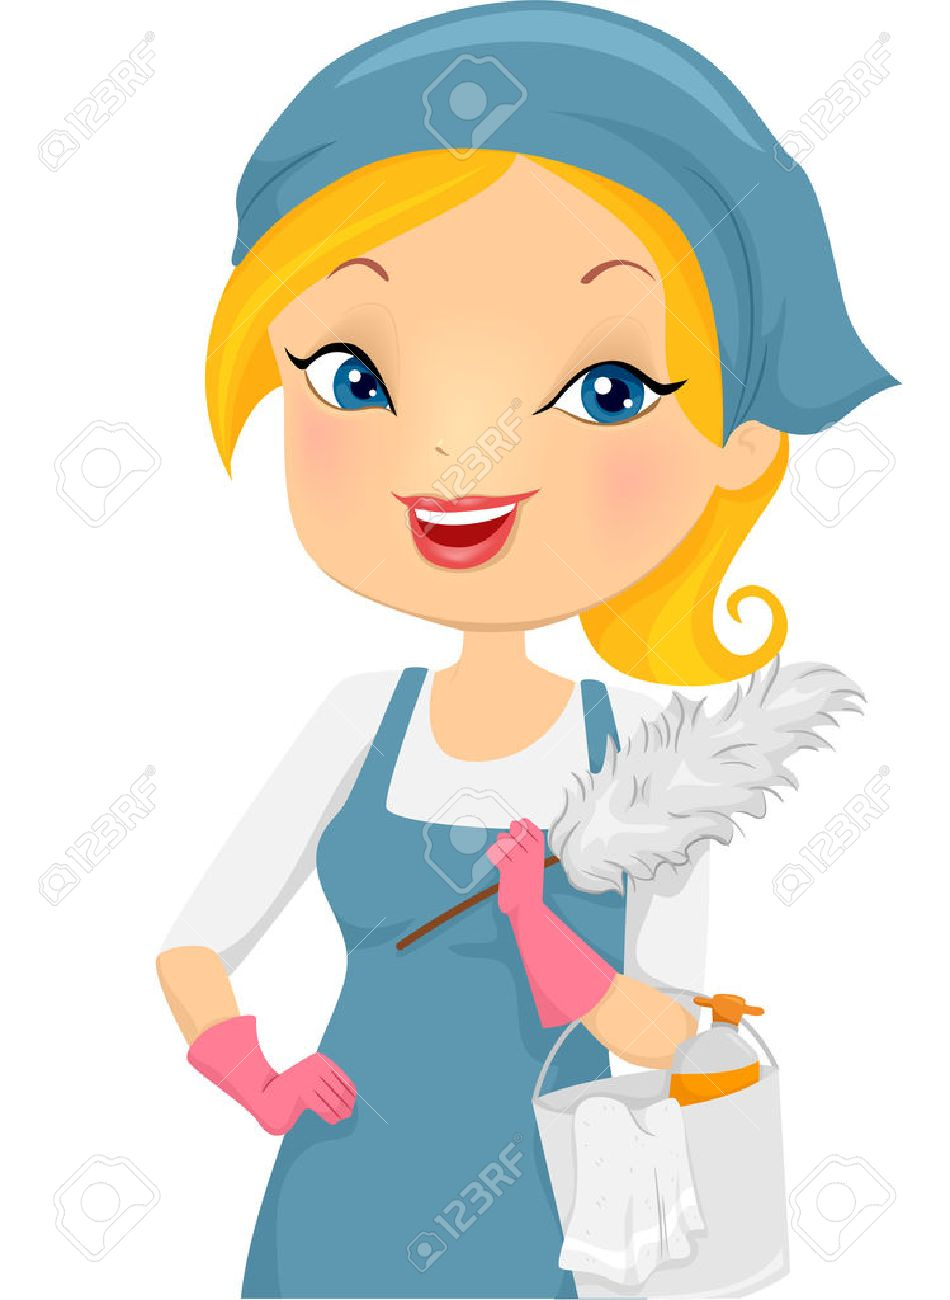 Illustration Of A Girl Providing Housecleaning Service Stock Vector    29410196